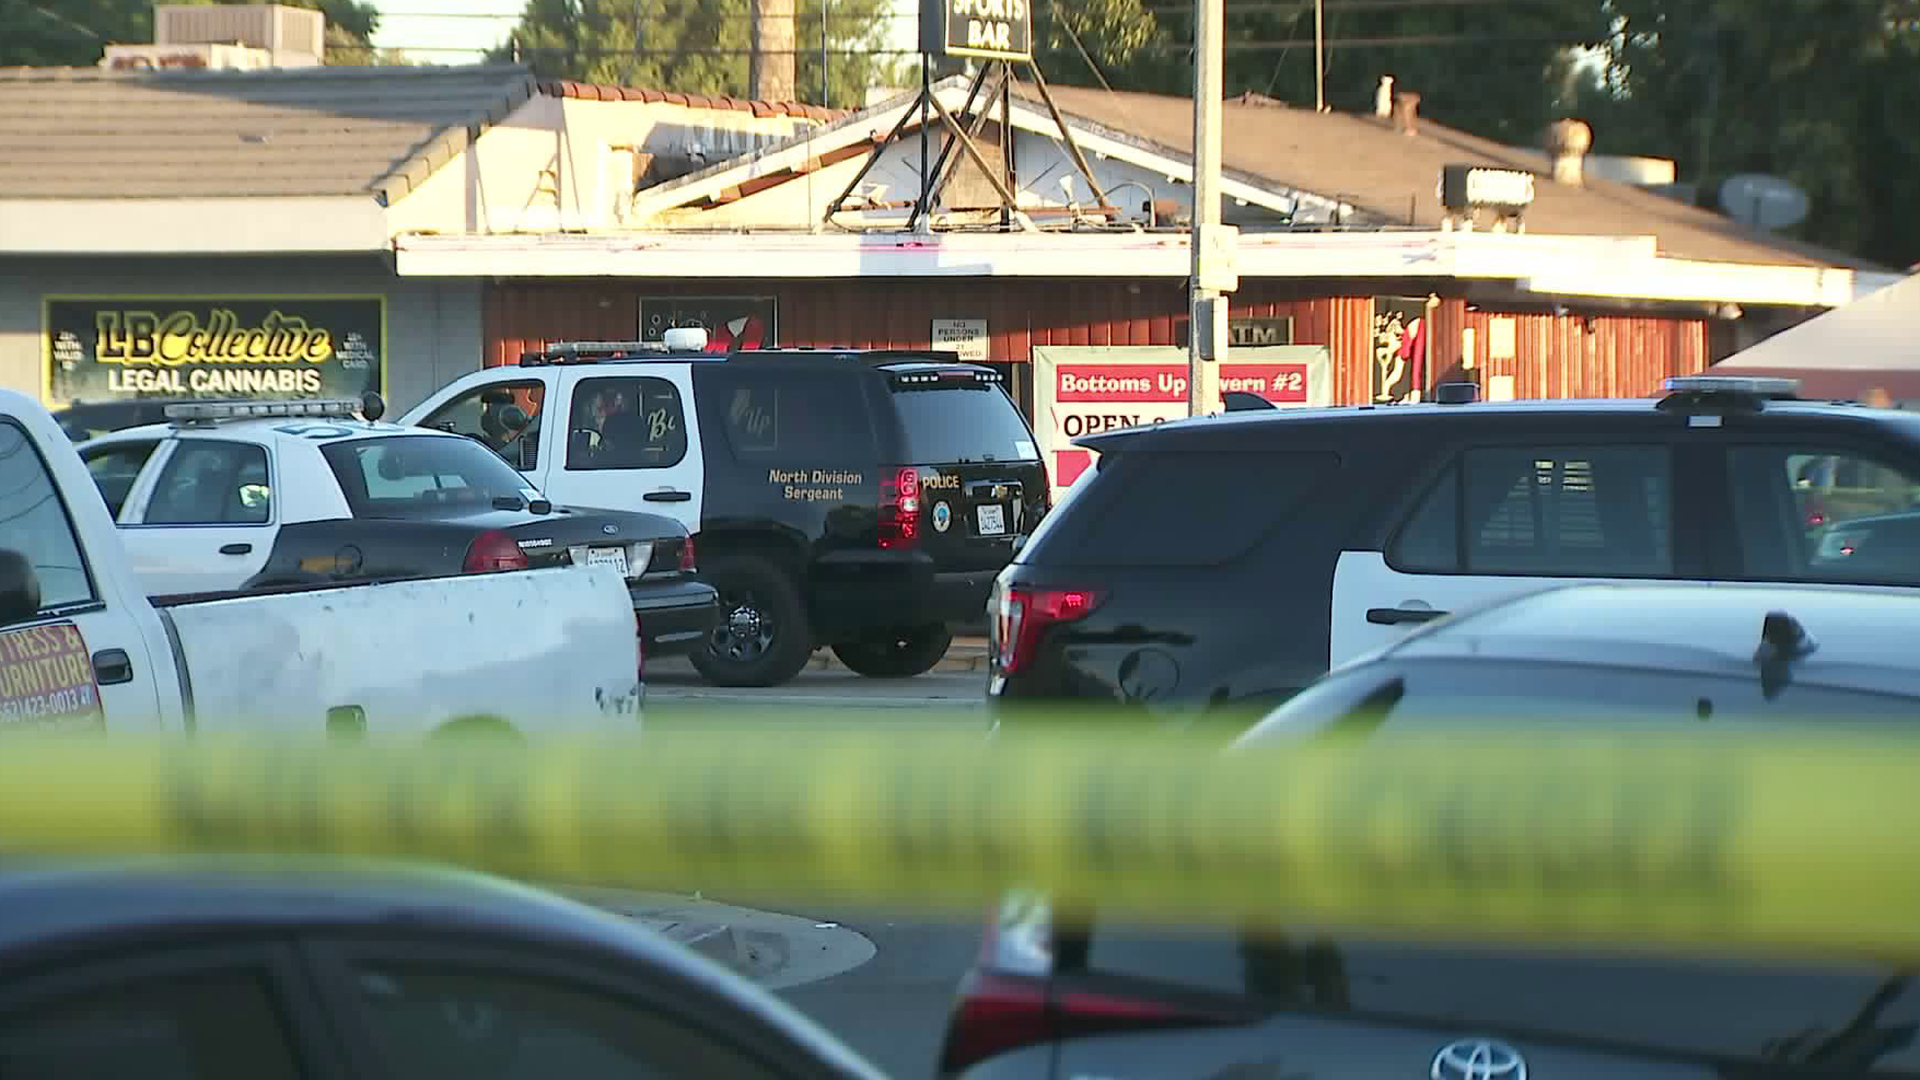 Police respond to a shooting at the Bottoms Up sports bar in Long Beach on Oct. 23, 2019. (Credit: KTLA)